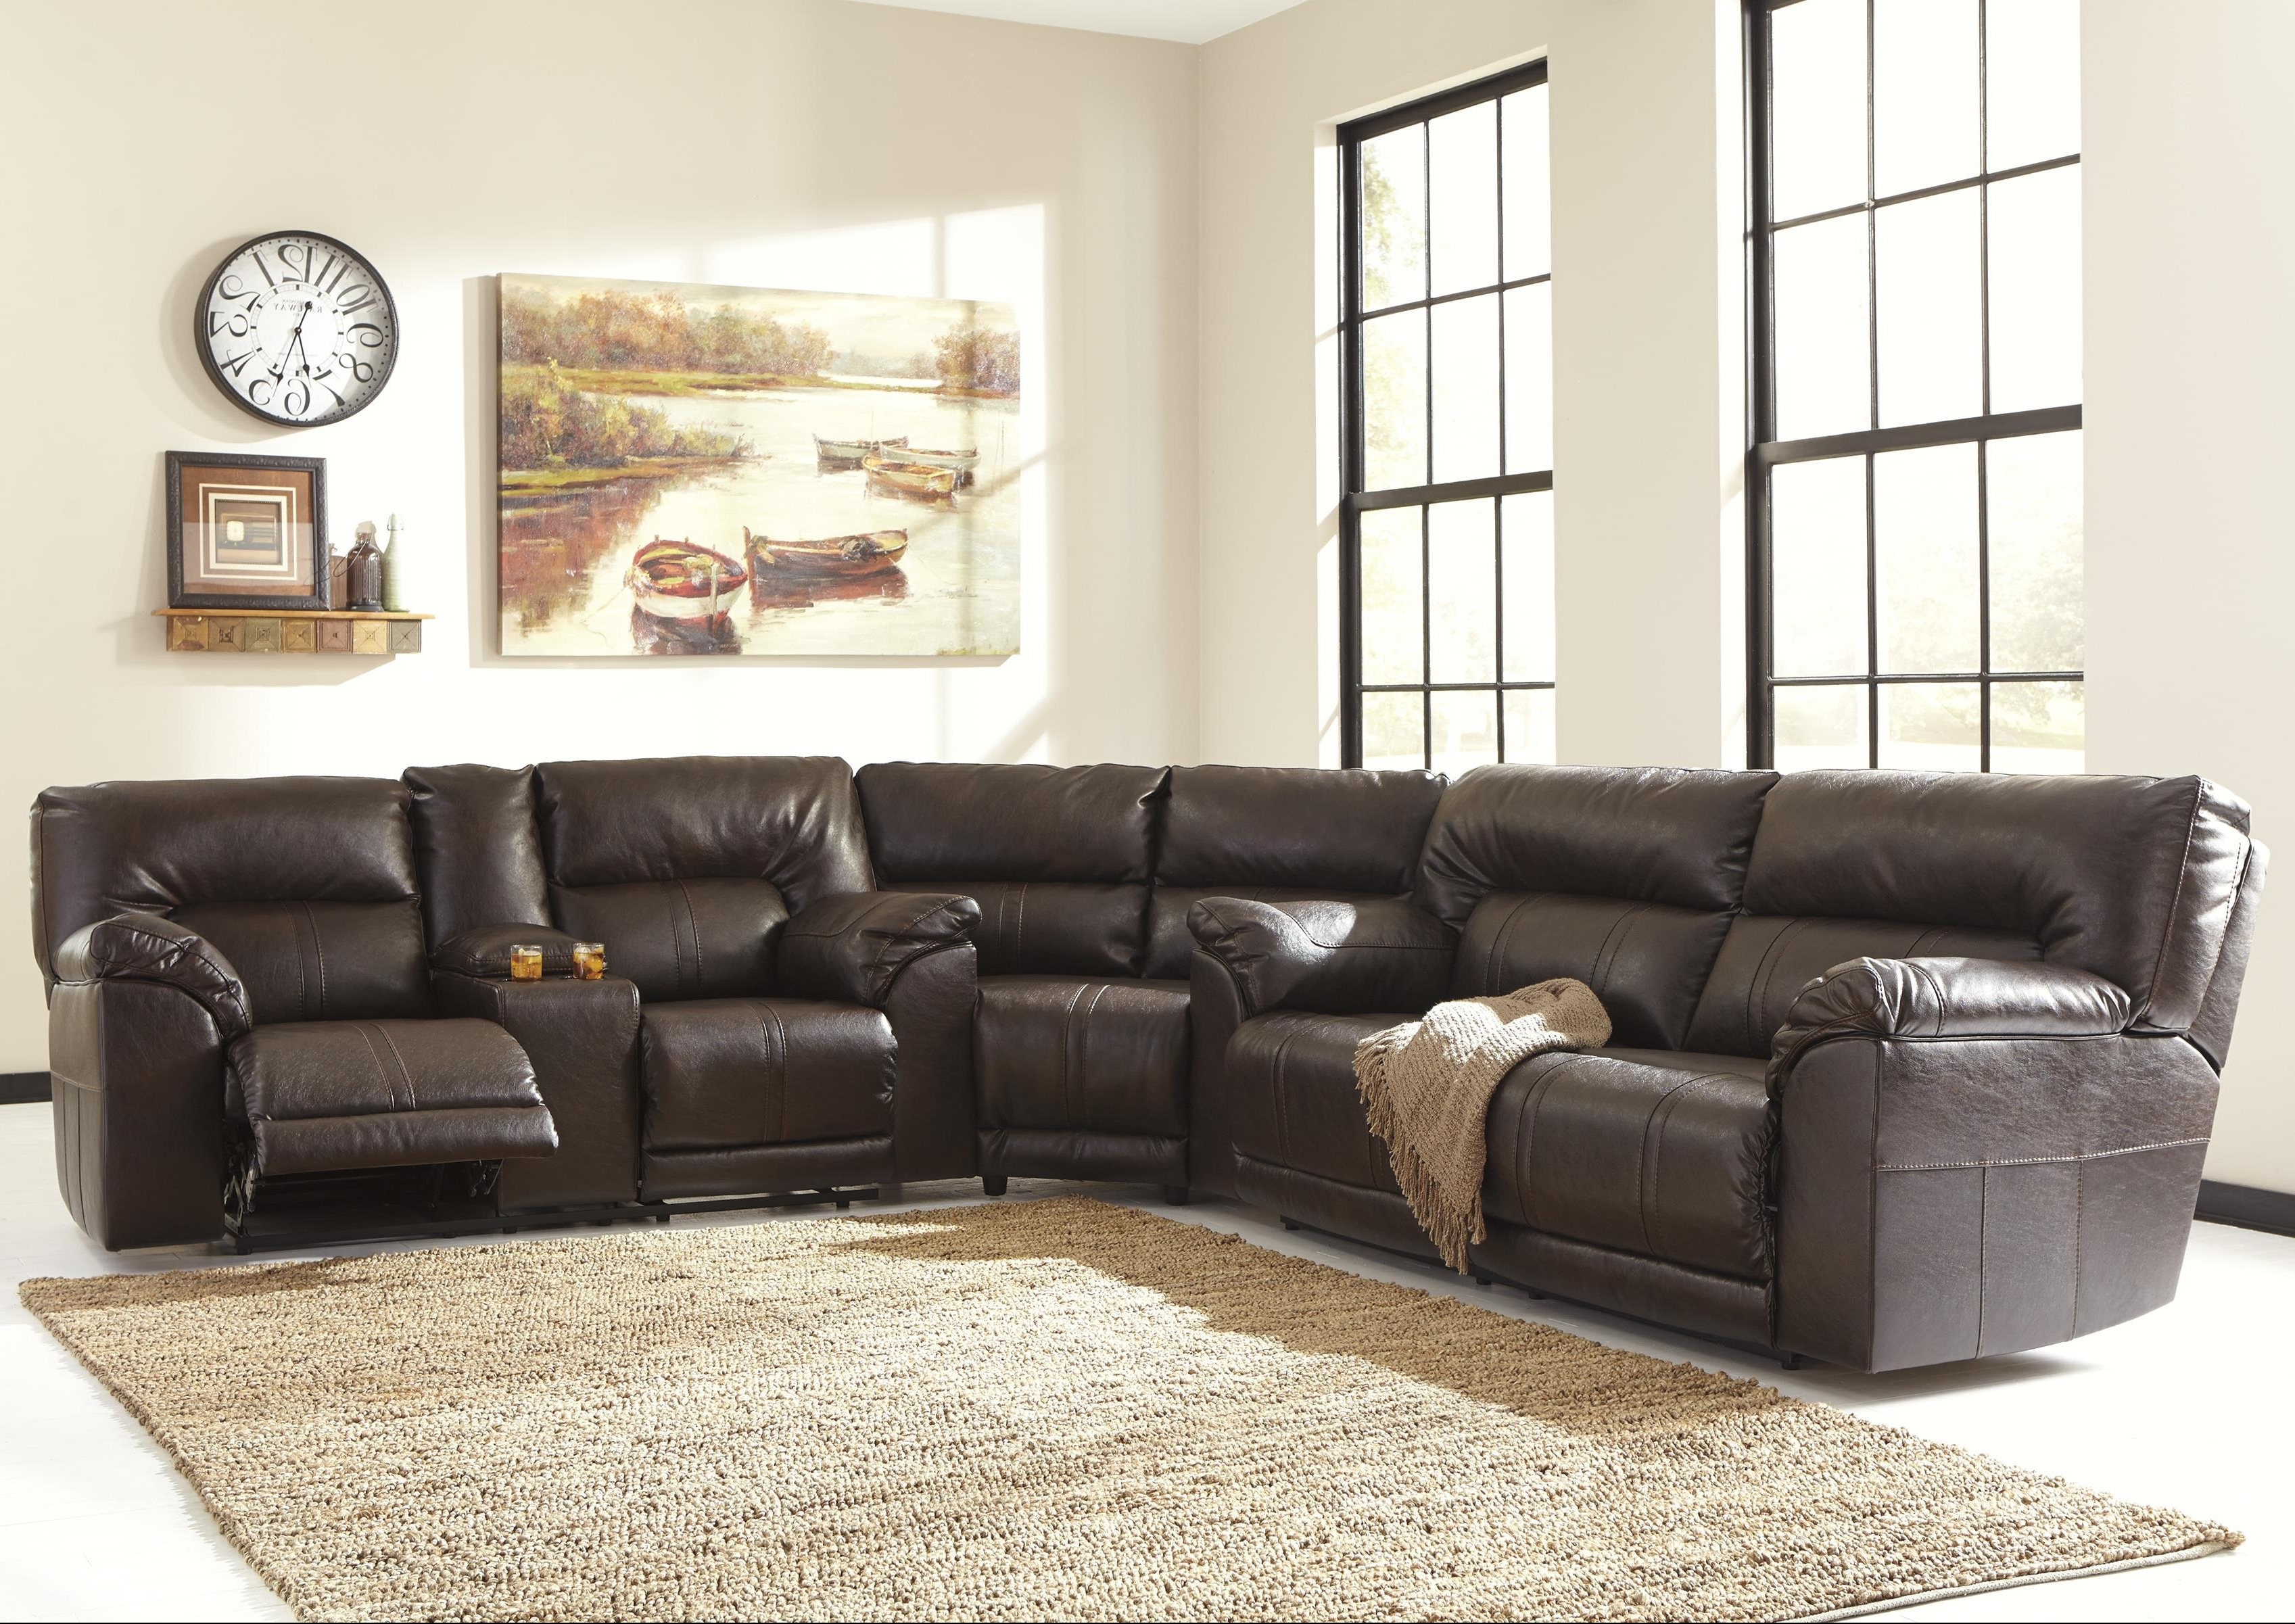 Widely Used Benchcraftashley Barrettsville Durablend® 3 Piece Reclining With Regard To Sectional Sofas At Birmingham Al (View 6 of 15)